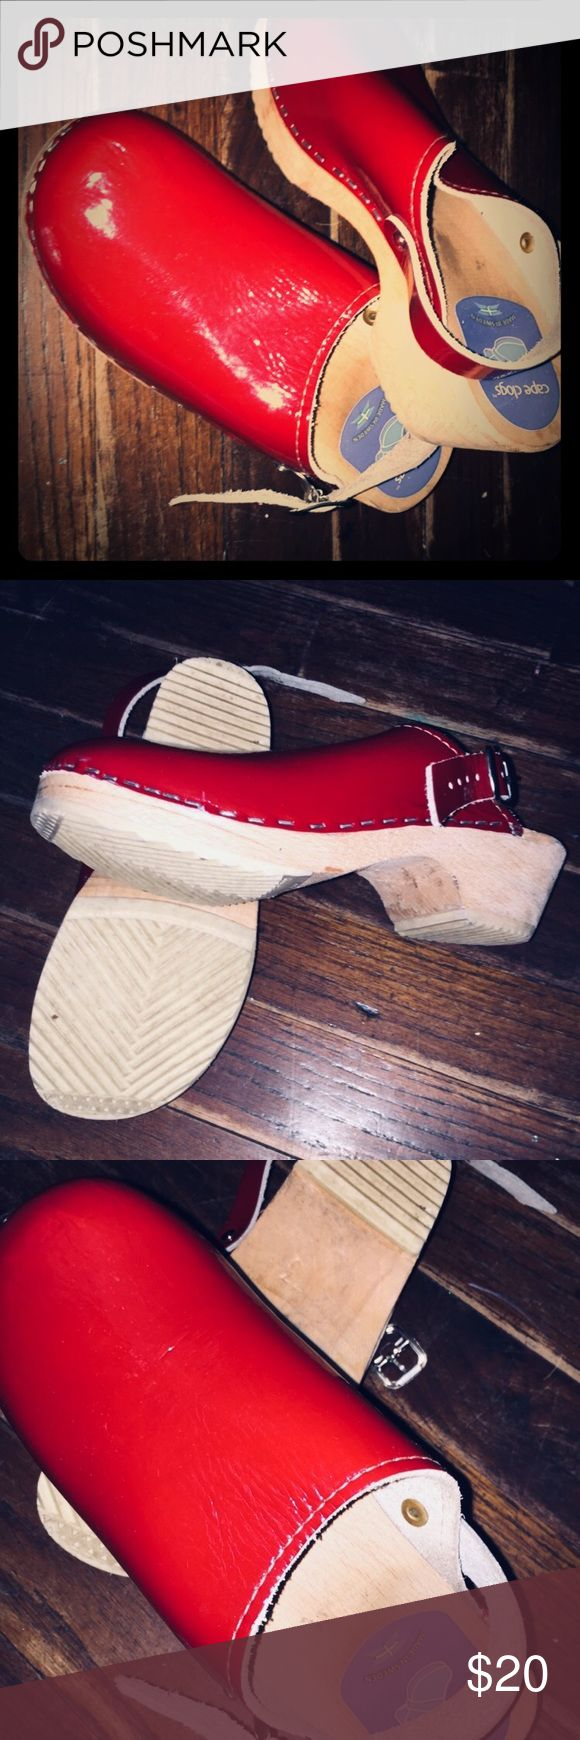 kelly's kids clogs red shiny leather clogs with buckles. Used size 33 girls. wear with or without buckle. I don't think either of my girls ever wore them outside. boutique kellys kids Shoes